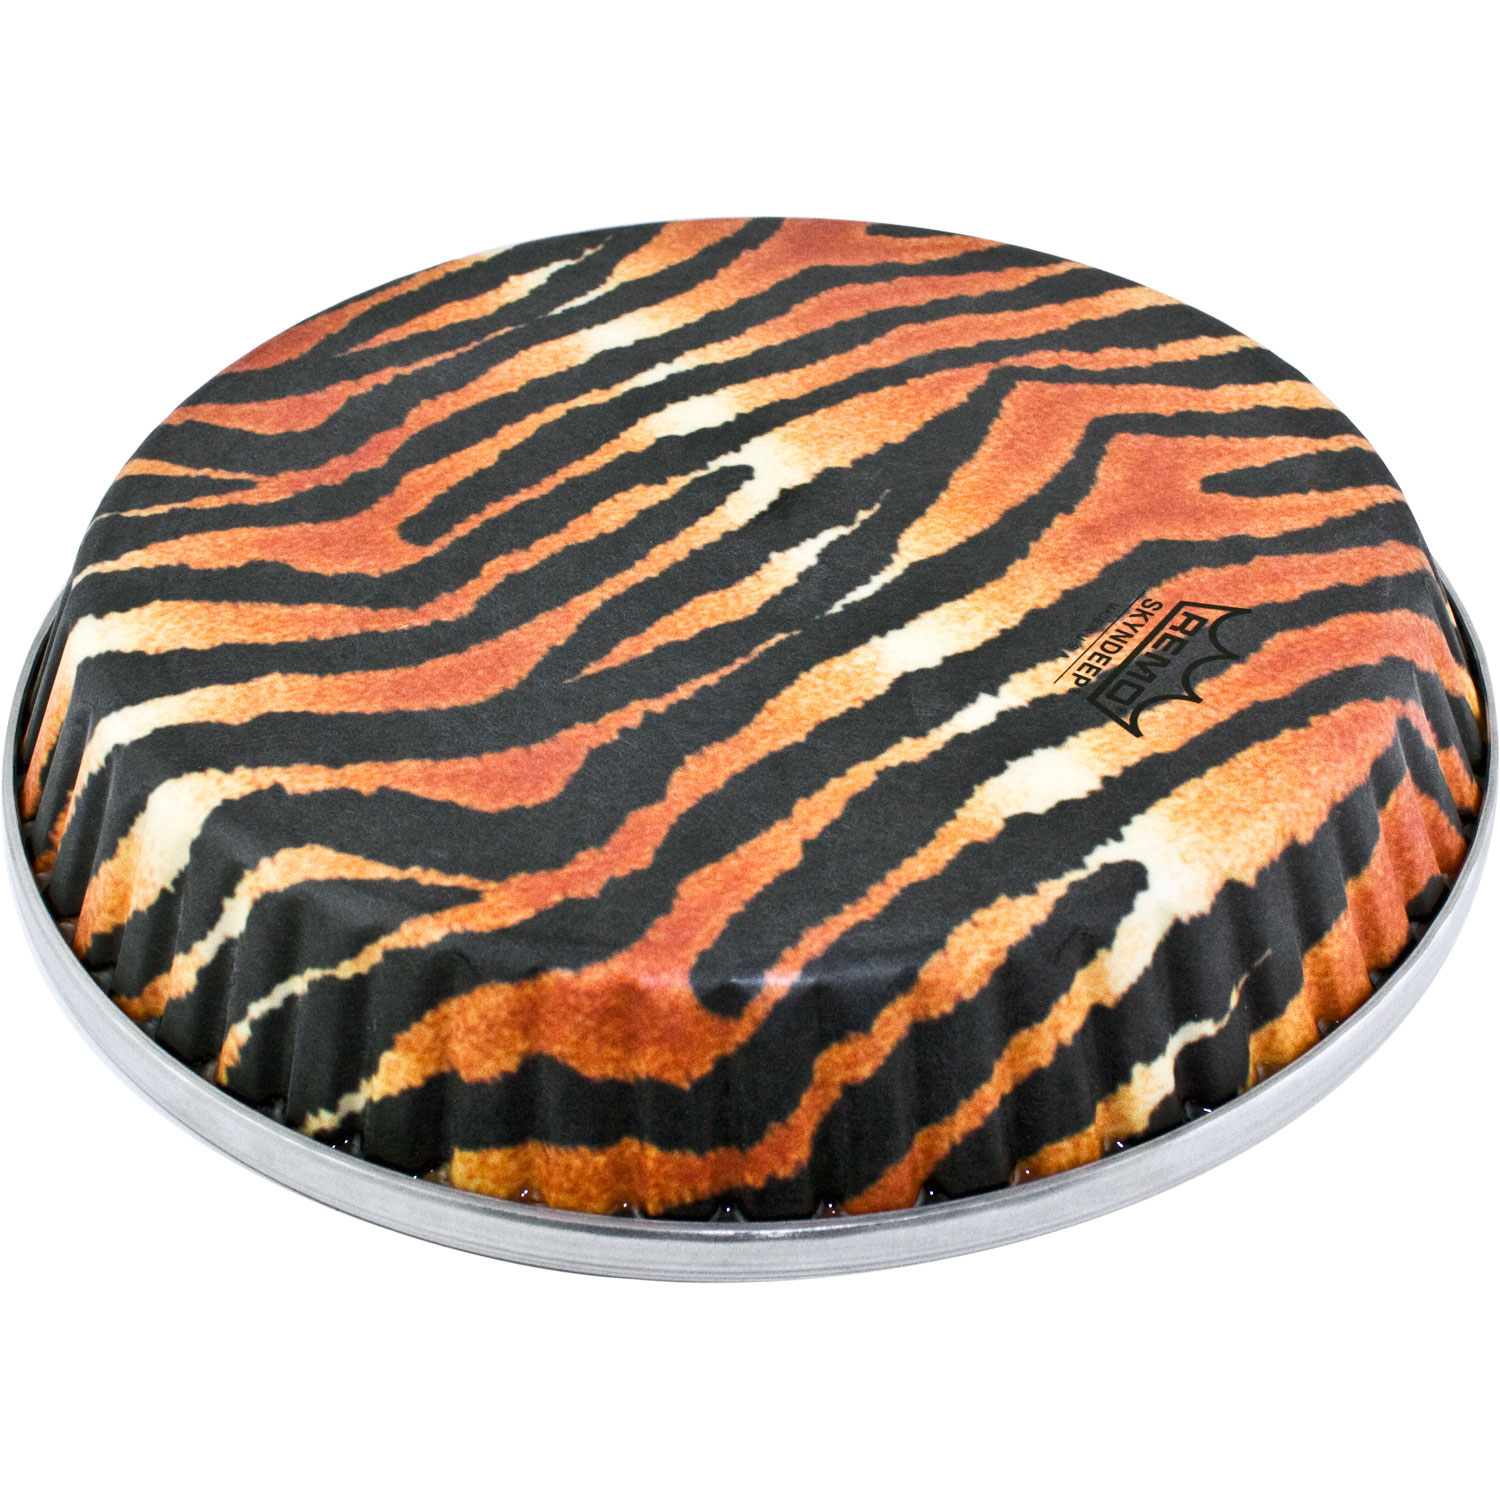 """Remo 10.75"""" Symmetry Skyndeep Conga Drum Head (D2 Collar) with Tiger Stripe Graphic"""